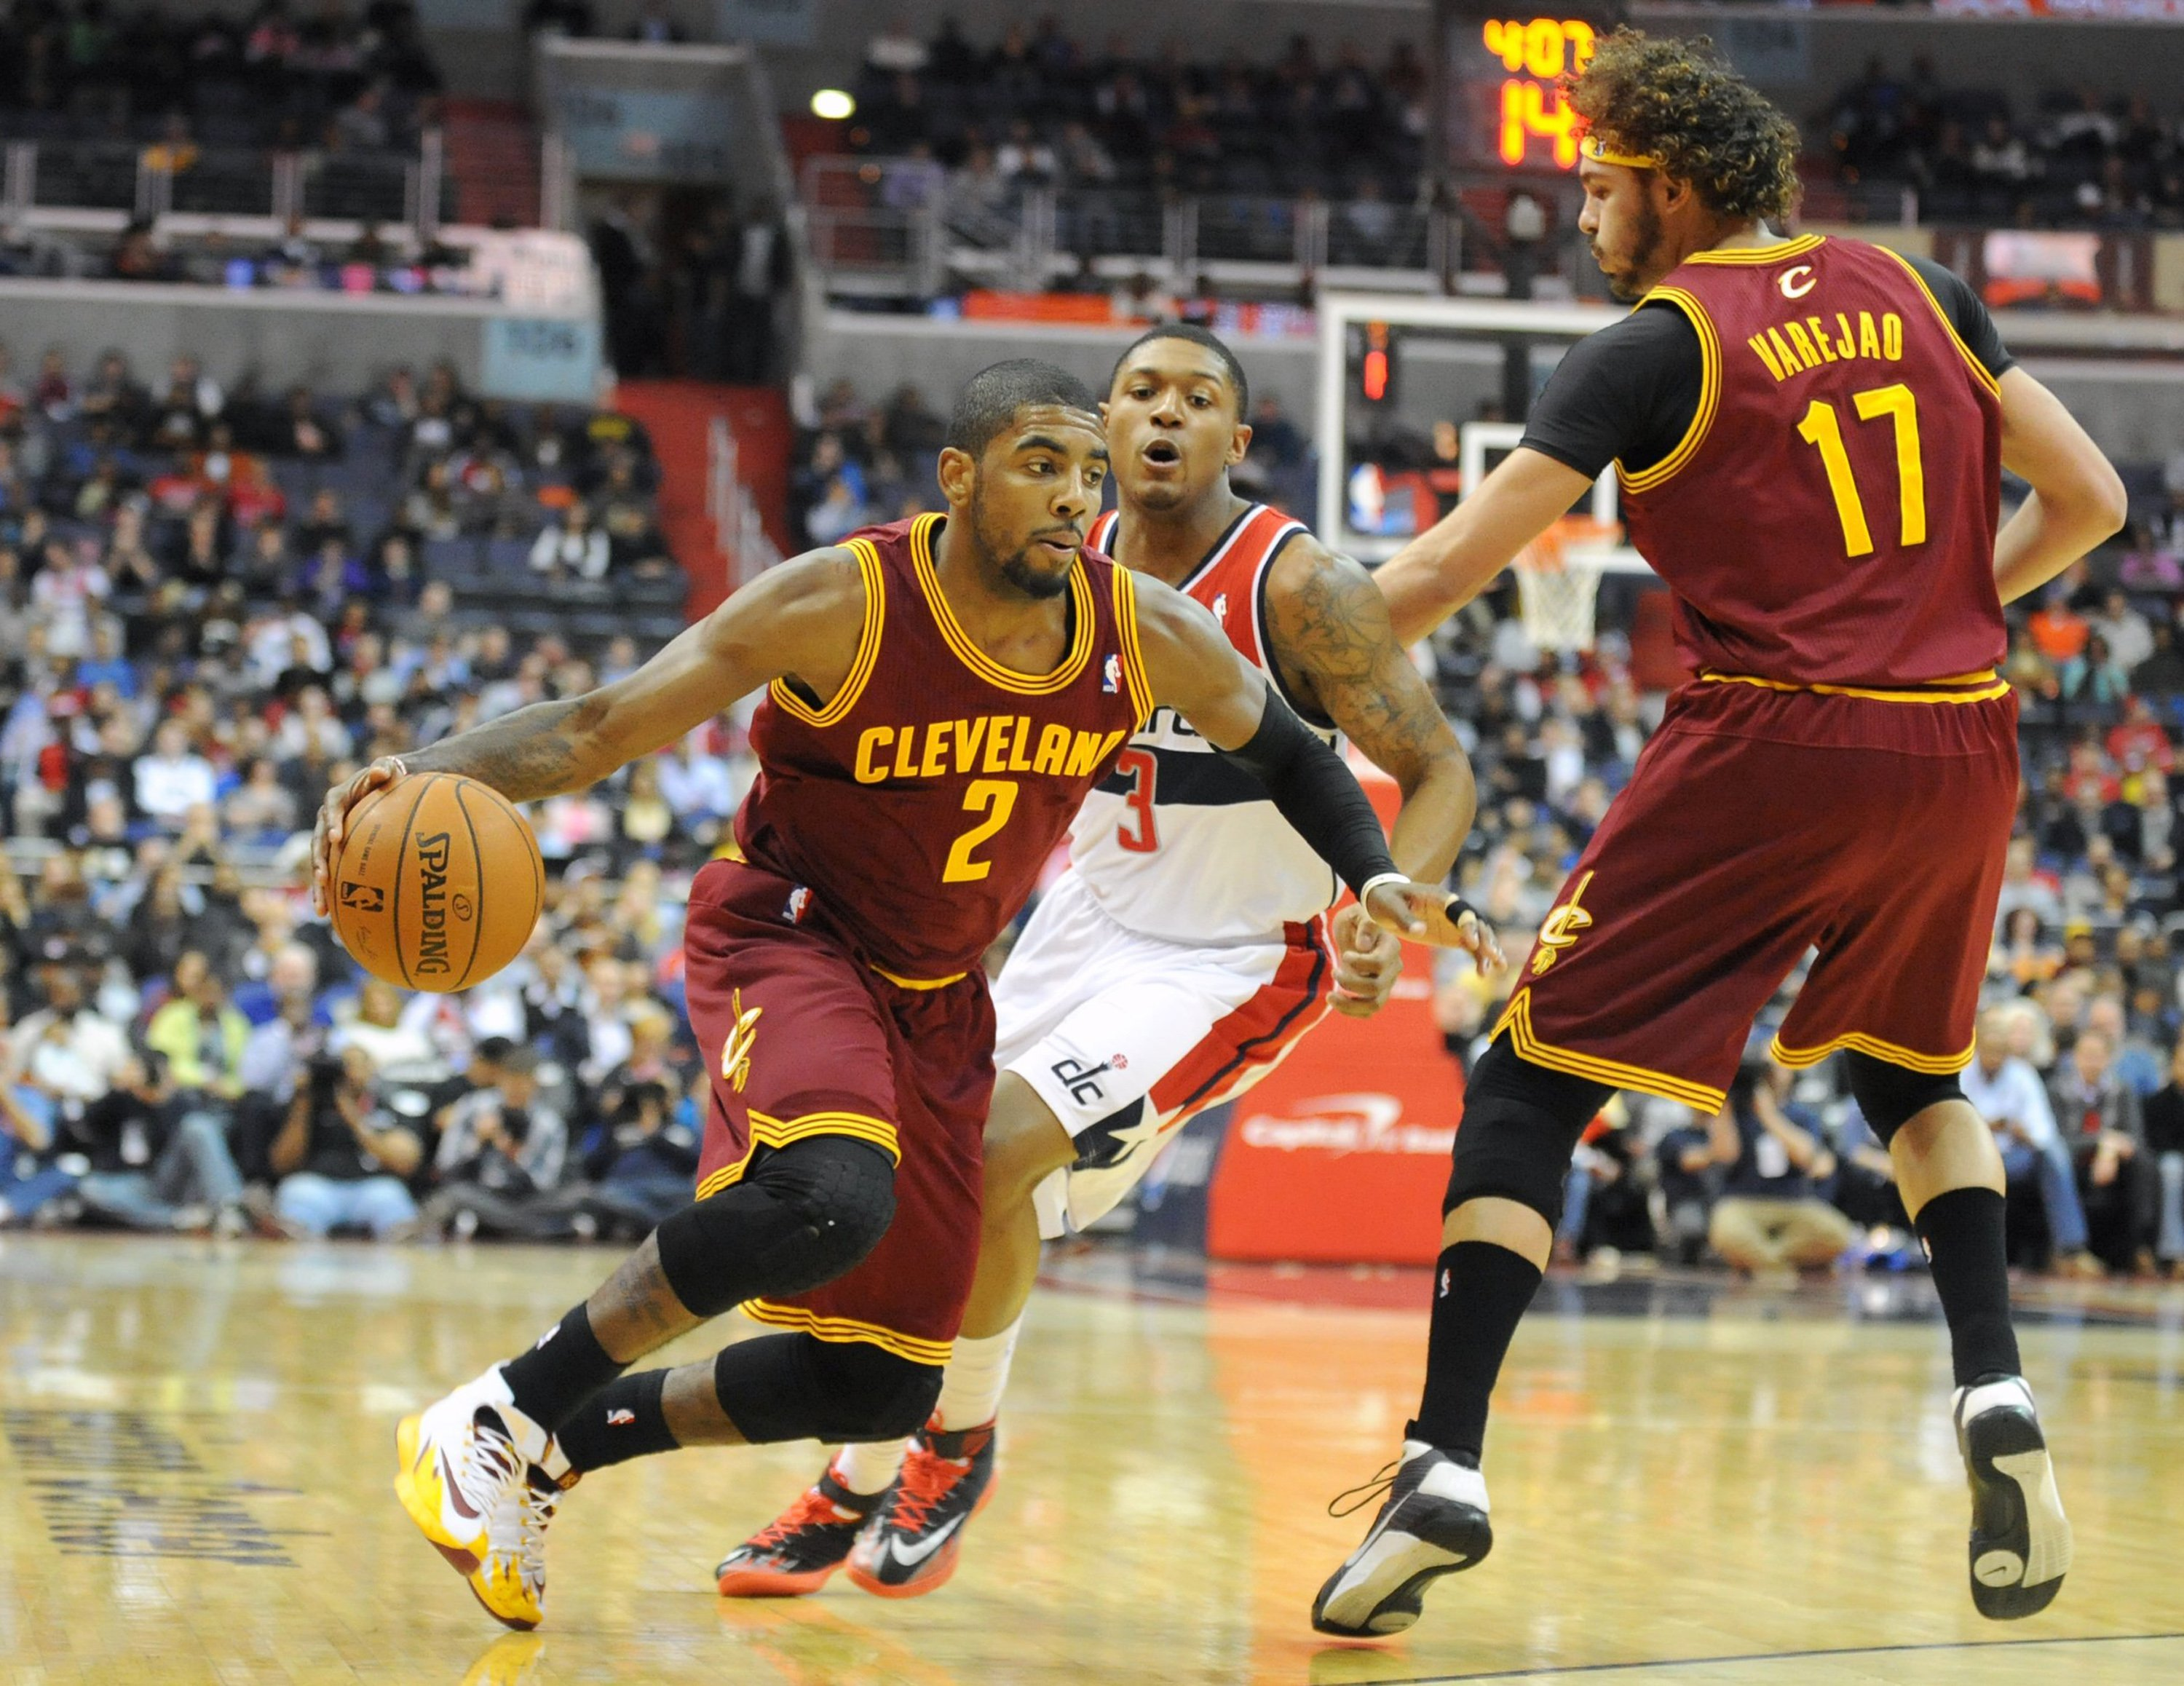 Kyrie Irving has had issues with durability in the past, but played in 71 games last season for Cleveland.